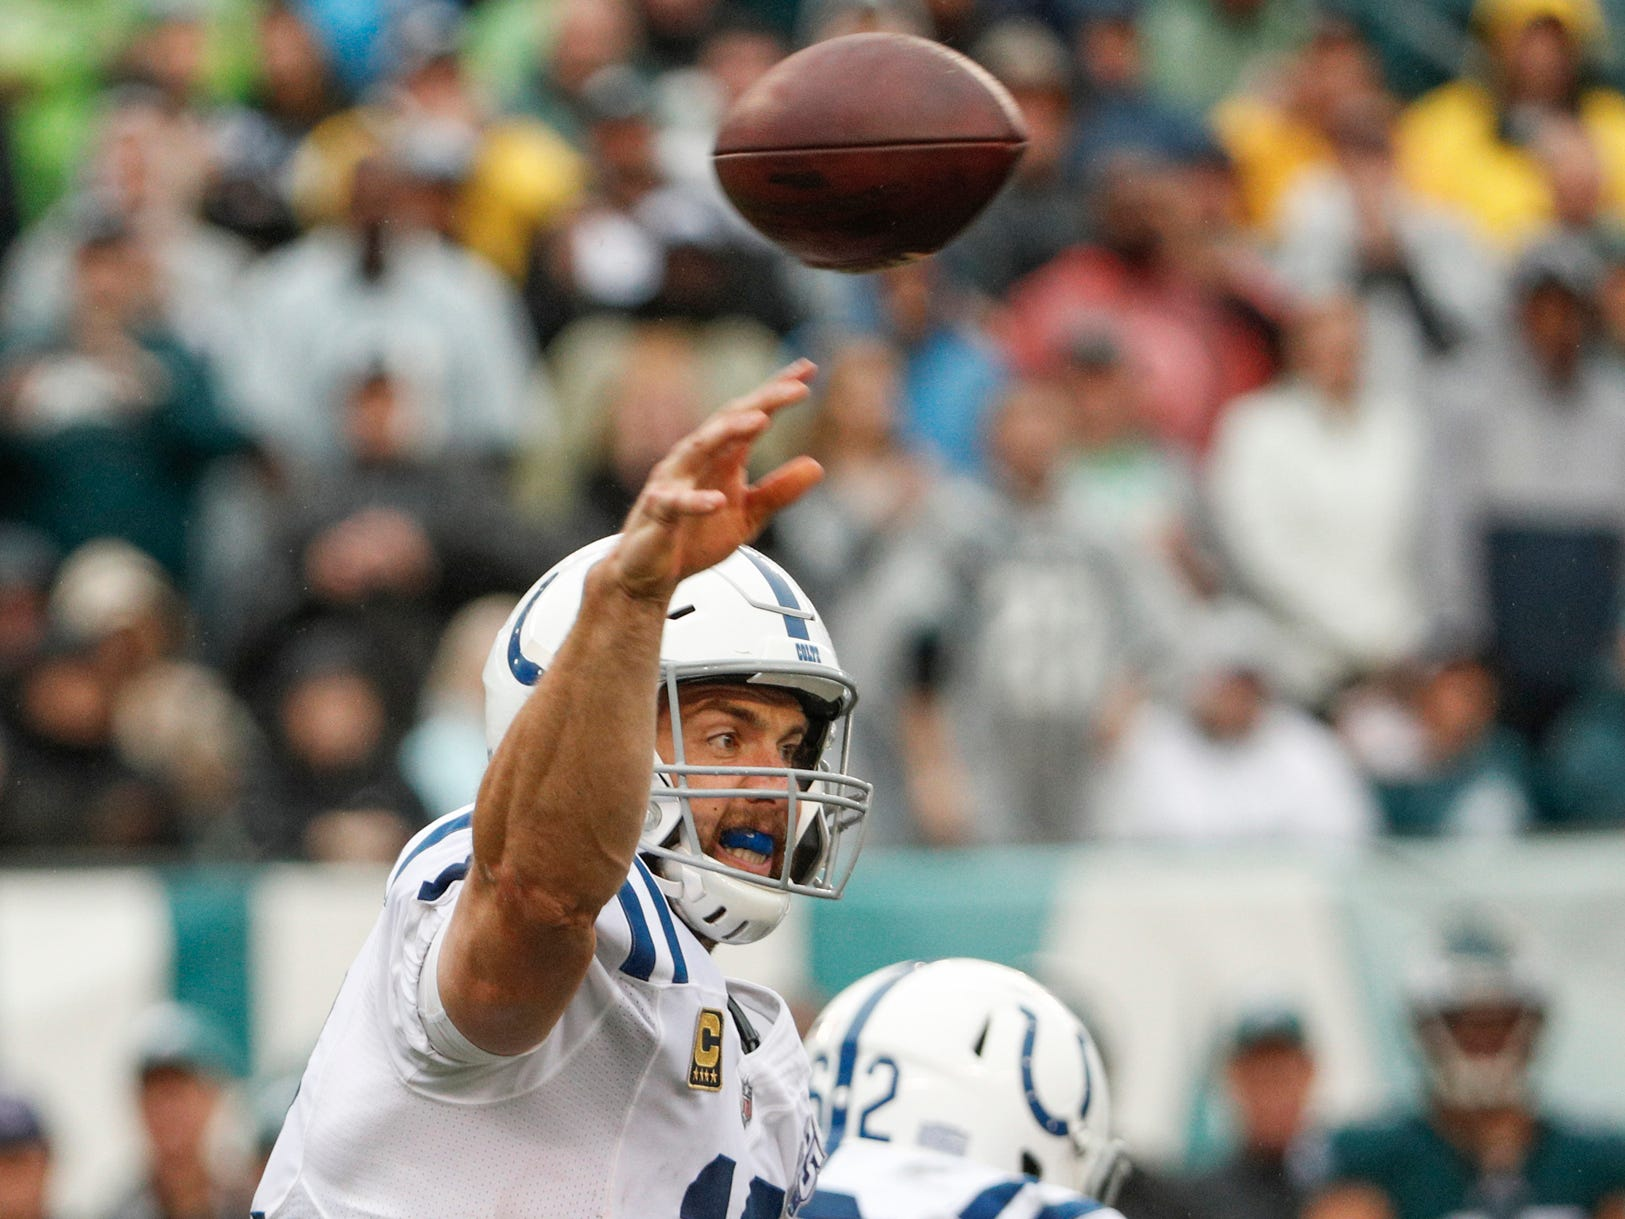 Indianapolis Colts quarterback Andrew Luck (12) delivers a pass against the Philadelphia Eagles at Lincoln Financial Field in Philadelphia, on Sunday, Sept. 23, 2018.